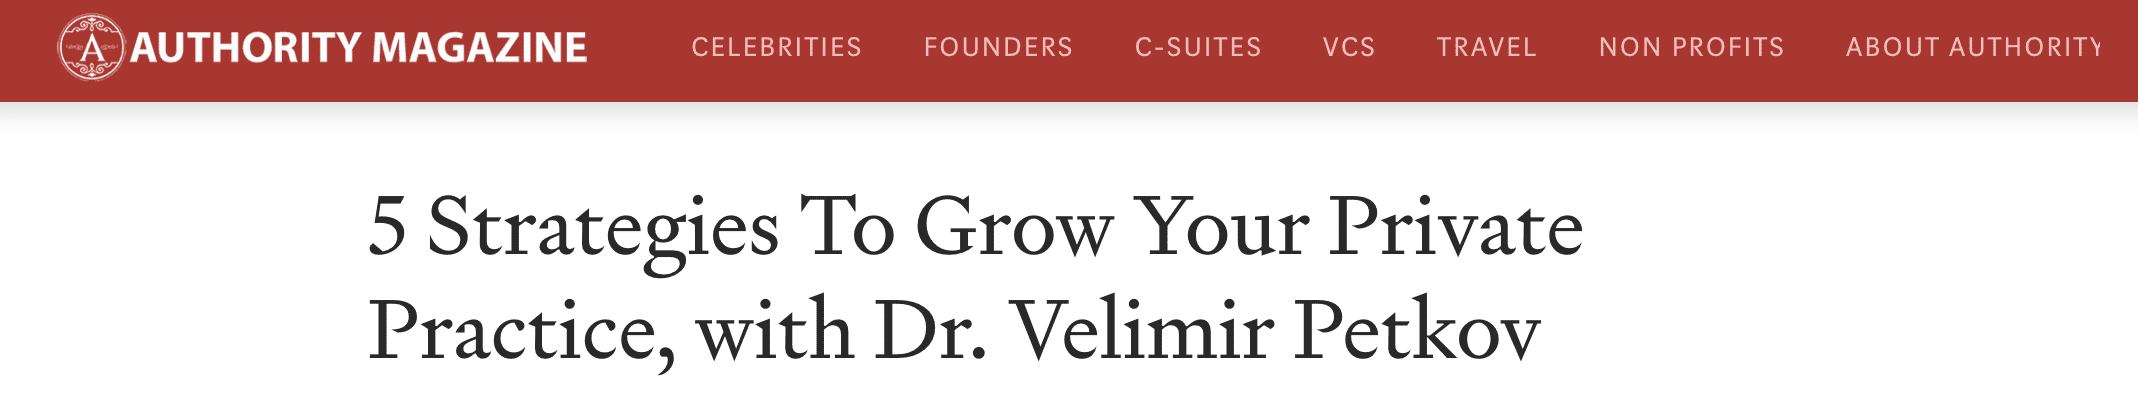 5 Strategies To Grow Your Private Practice, with Dr. Velimir Petkov